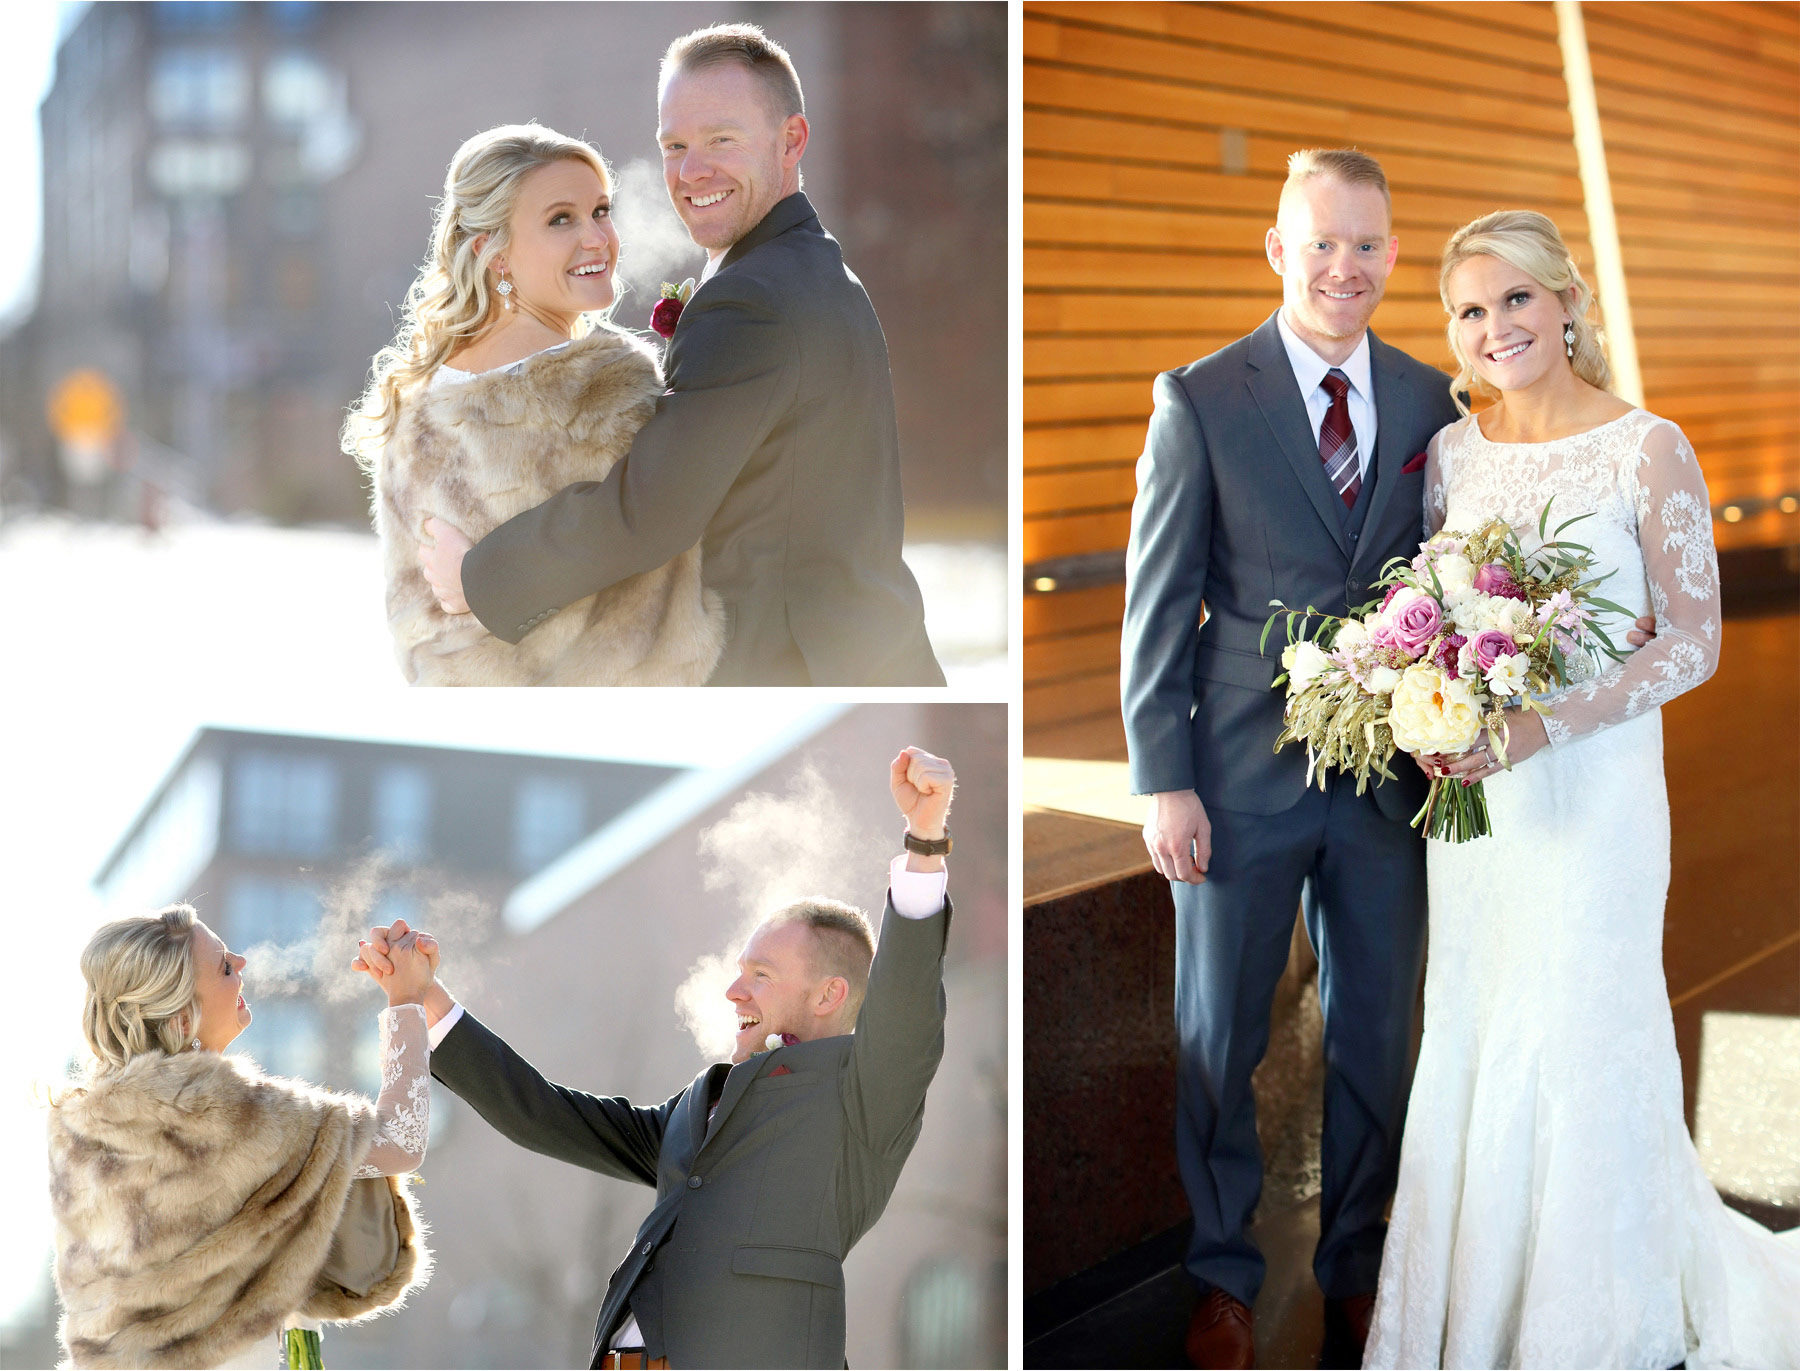 08-Minneapolis-Minnesota-Wedding-Photographer-by-Andrew-Vick-Photography-Winter-McNamara-Alumni-Center-First-Meeting-Look-Bride-Groom-Flowers-Excitement-Embrace-Fur-Shrug-Brittany-and-Joseph.jpg